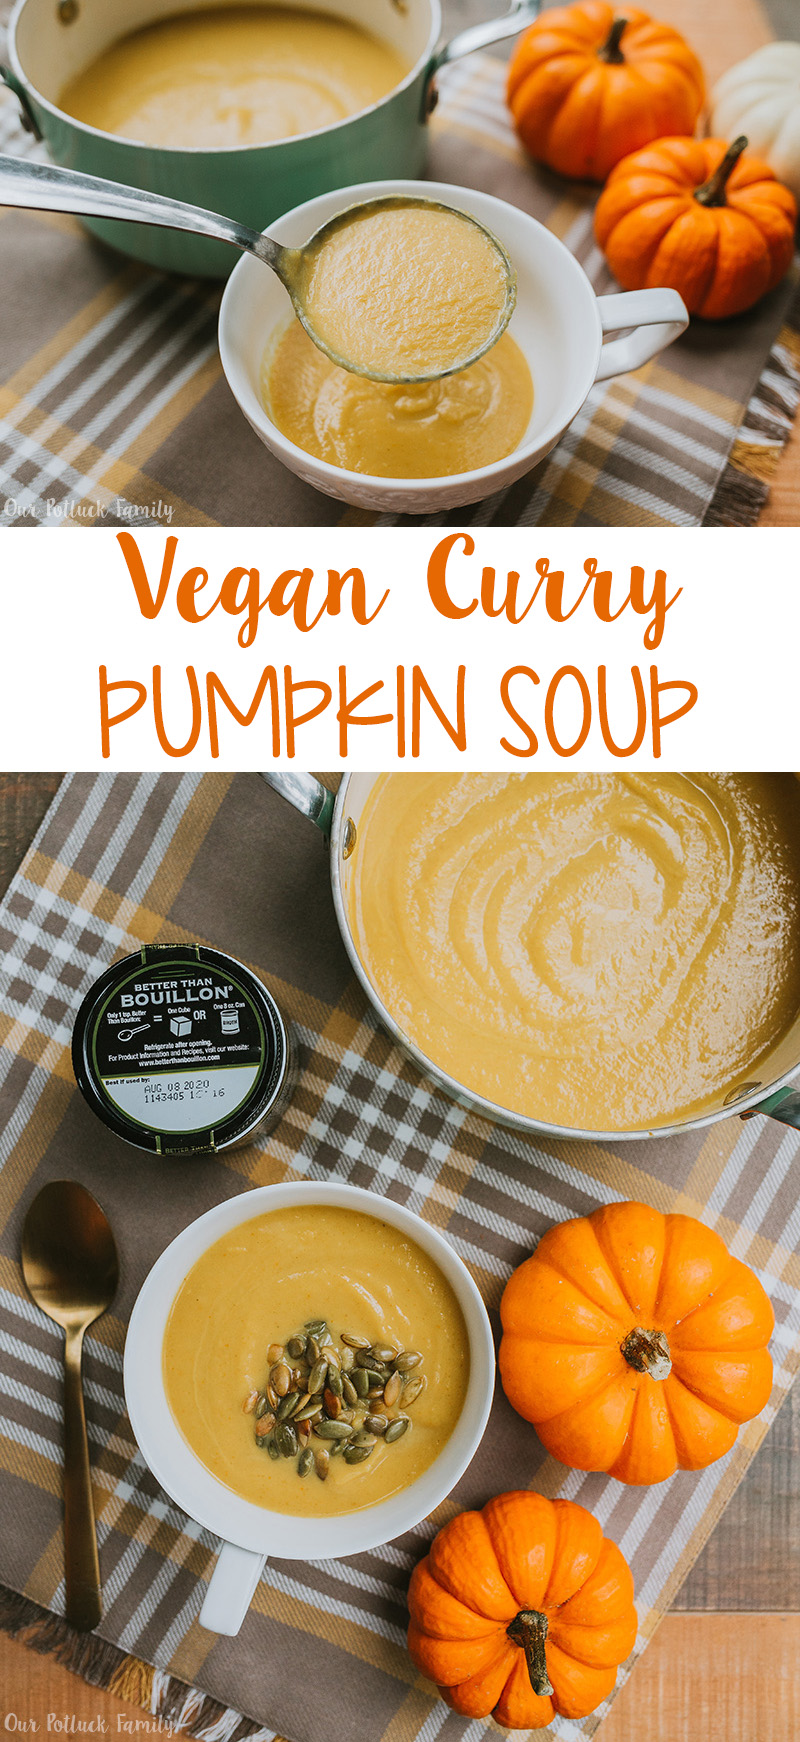 Vegan Curry Pumpkin Soup